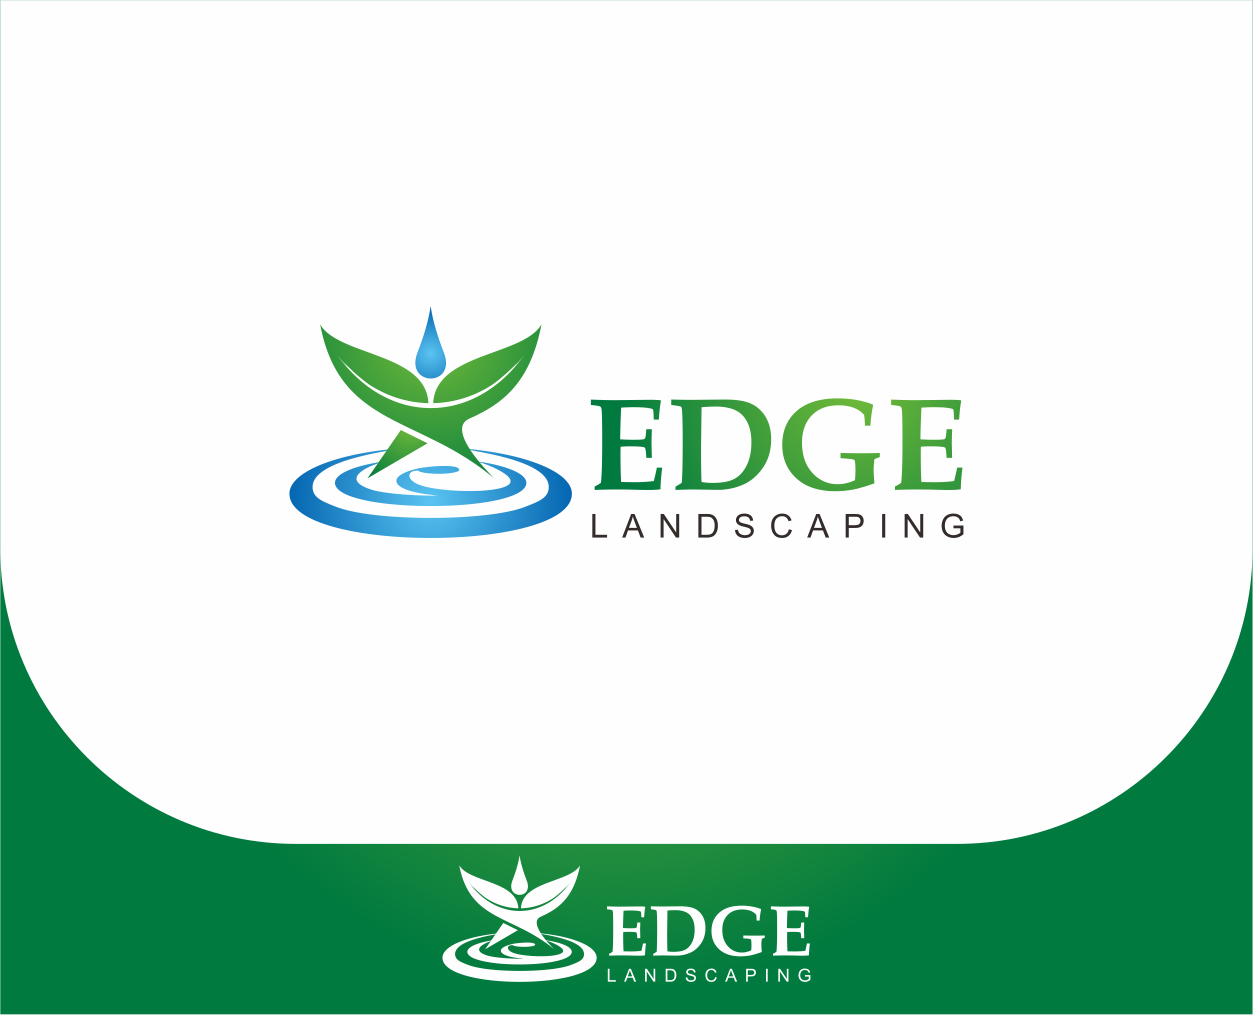 Logo Design by Armada Jamaluddin - Entry No. 230 in the Logo Design Contest Inspiring Logo Design for Edge Landscaping.